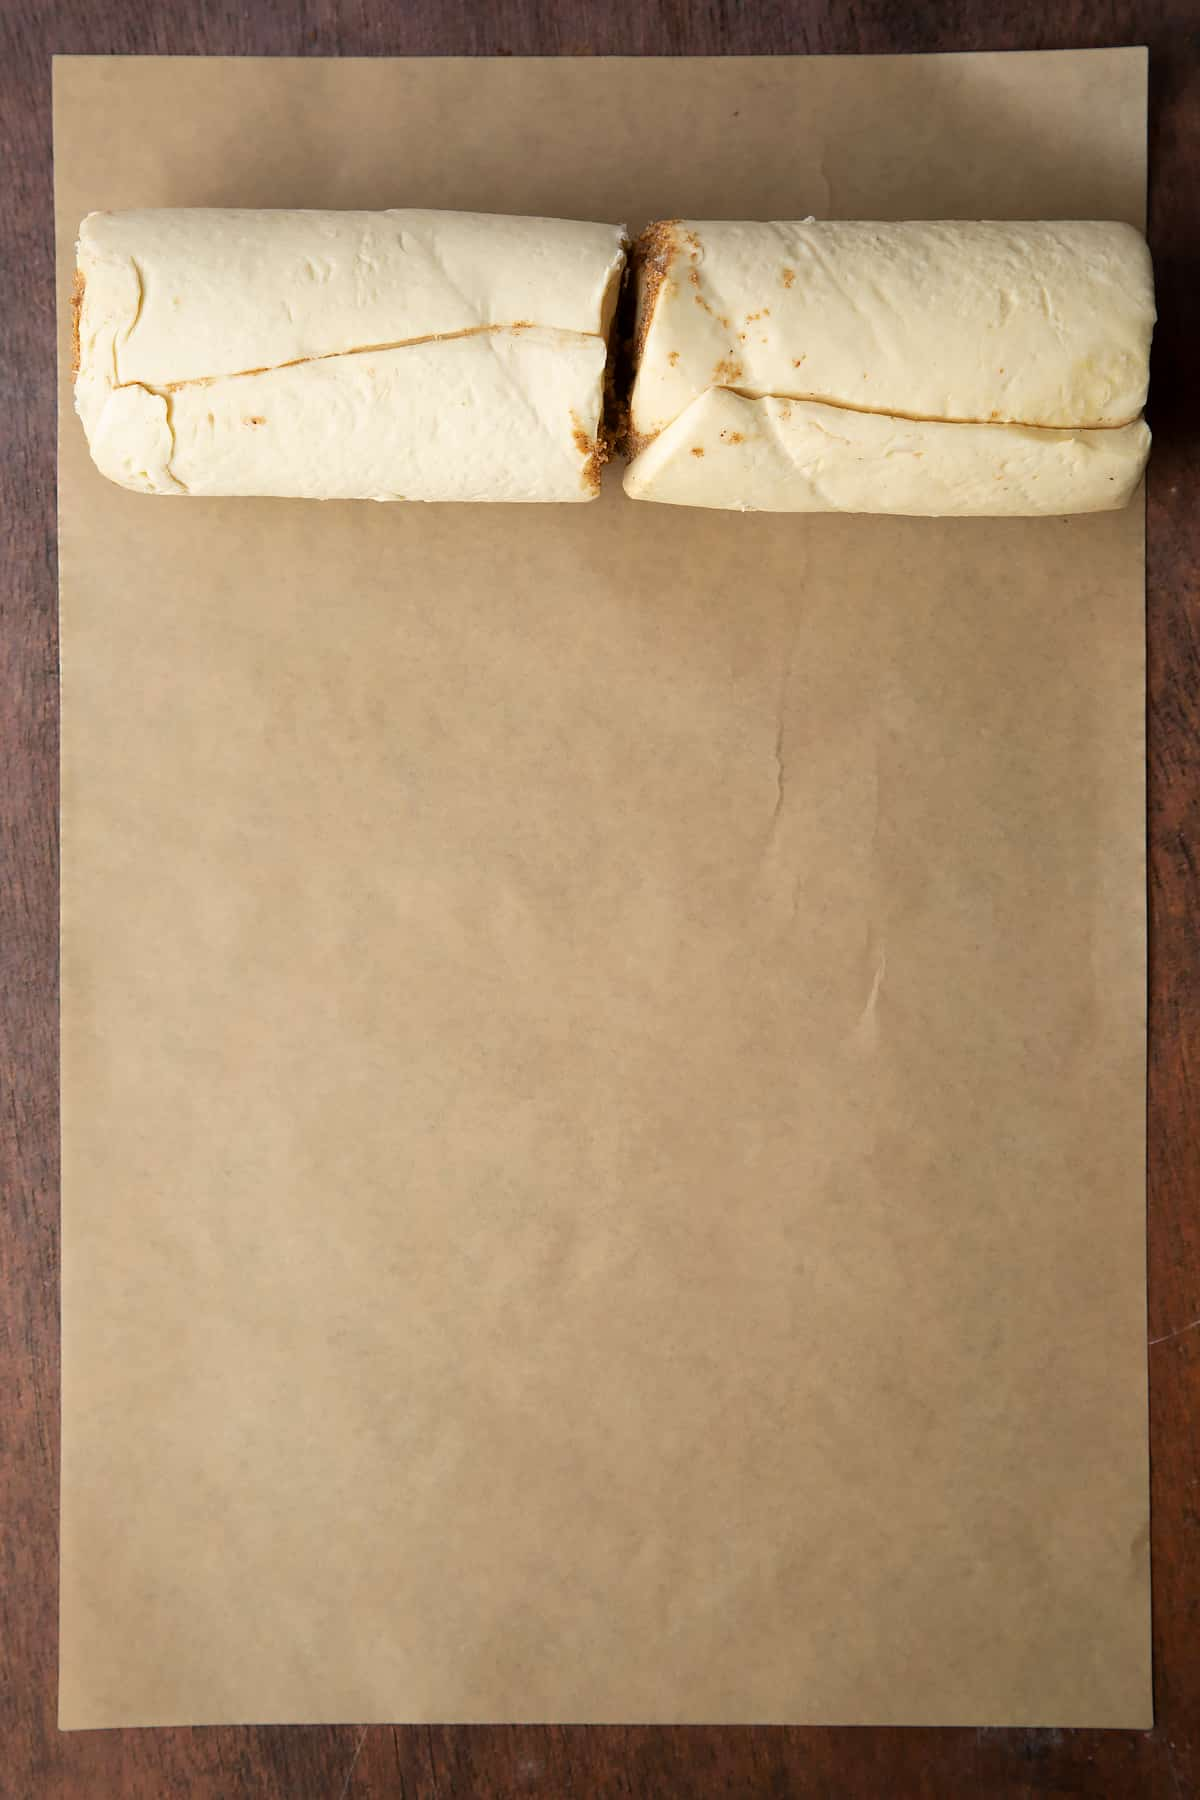 Two rolls of cinnamon swirl dough on a piece of brown baking paper.